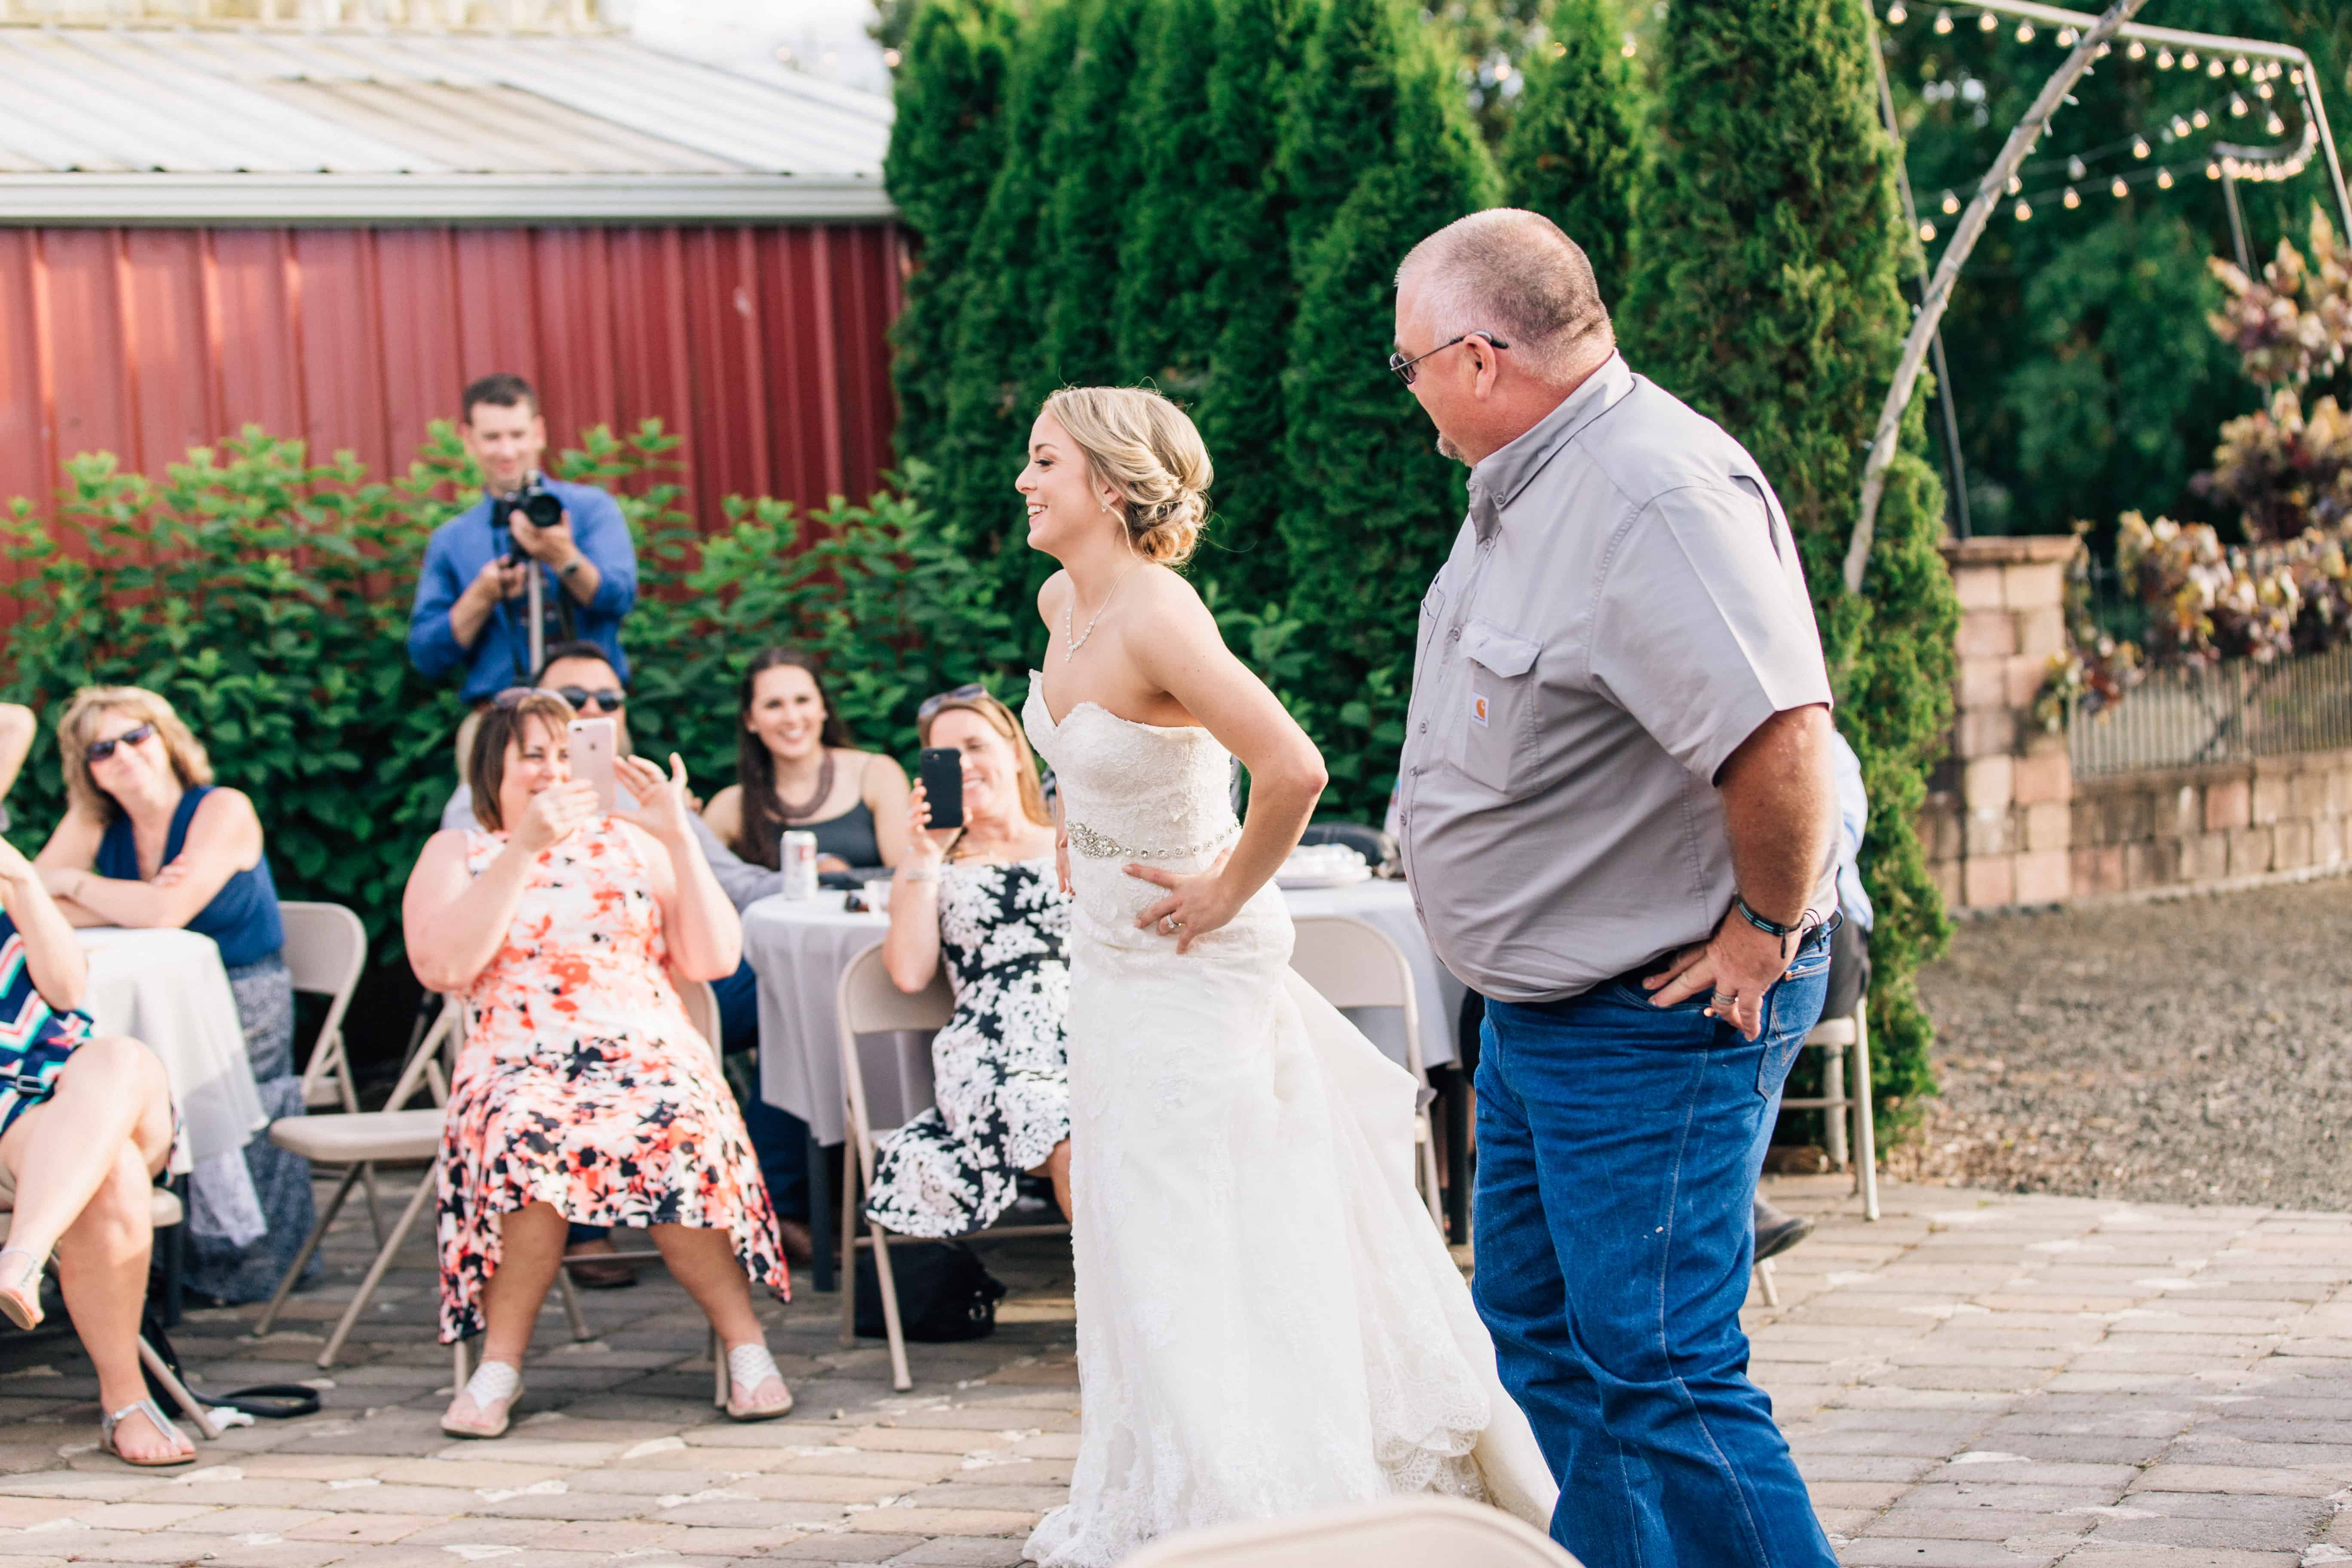 An image of a wedding scene where the Father of the Bride and the Bride are doing a fun dance for their Father and Daughter Dance. Wedding Guests can be seen in the background.